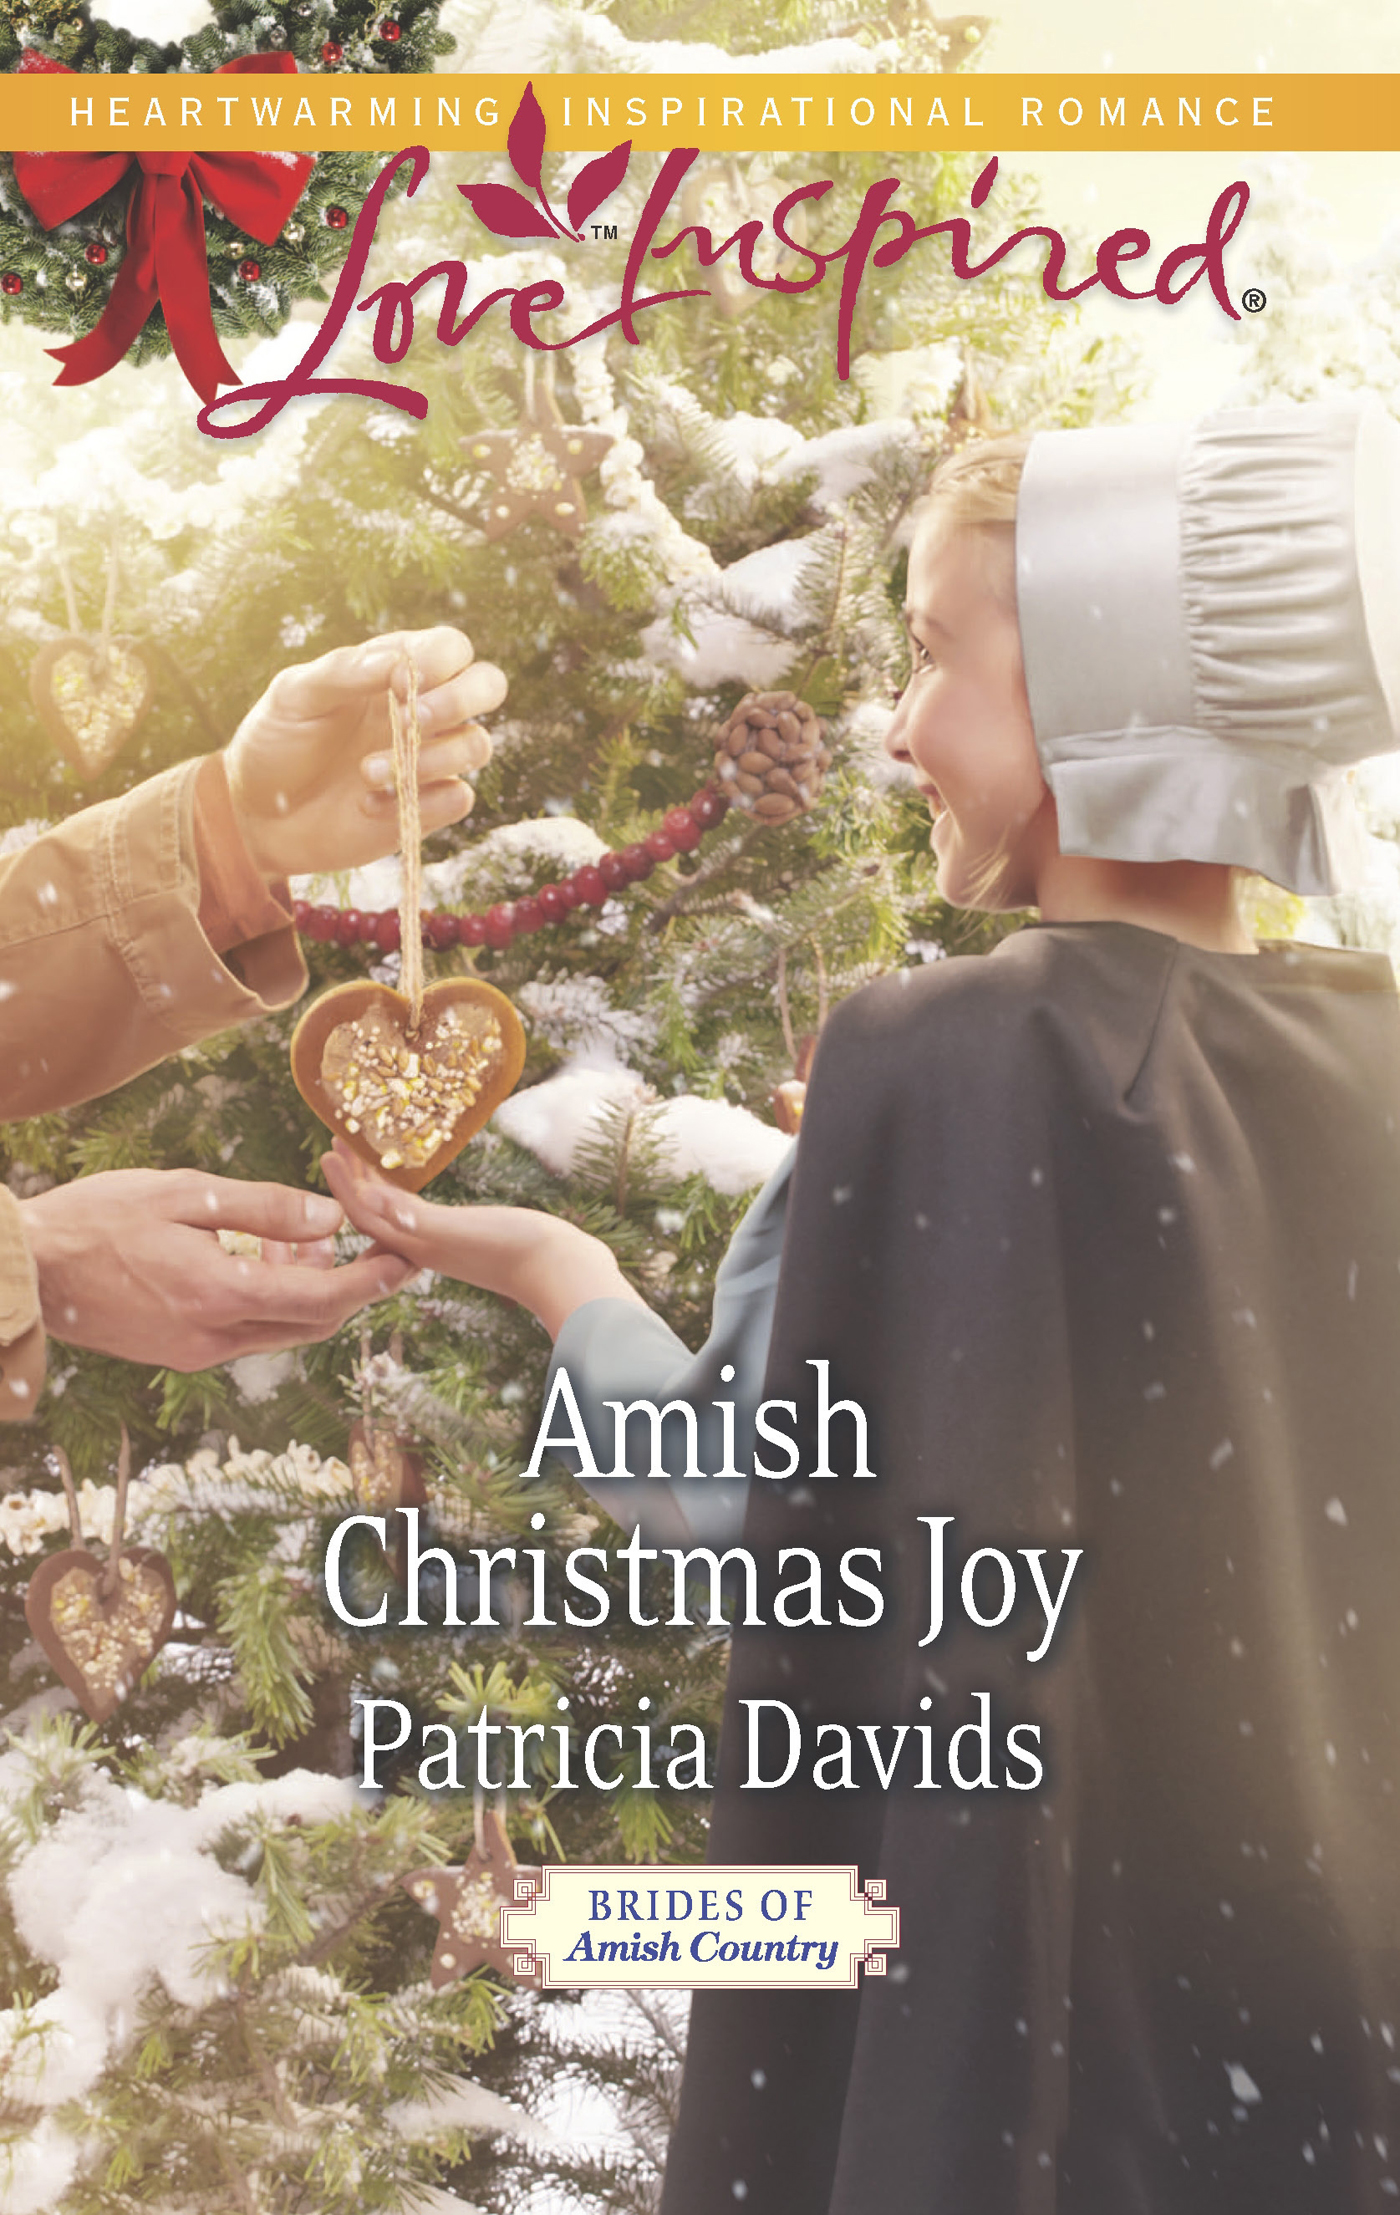 Amish Christmas Joy (Mills & Boon Love Inspired) (Brides of Amish Country - Book 10)